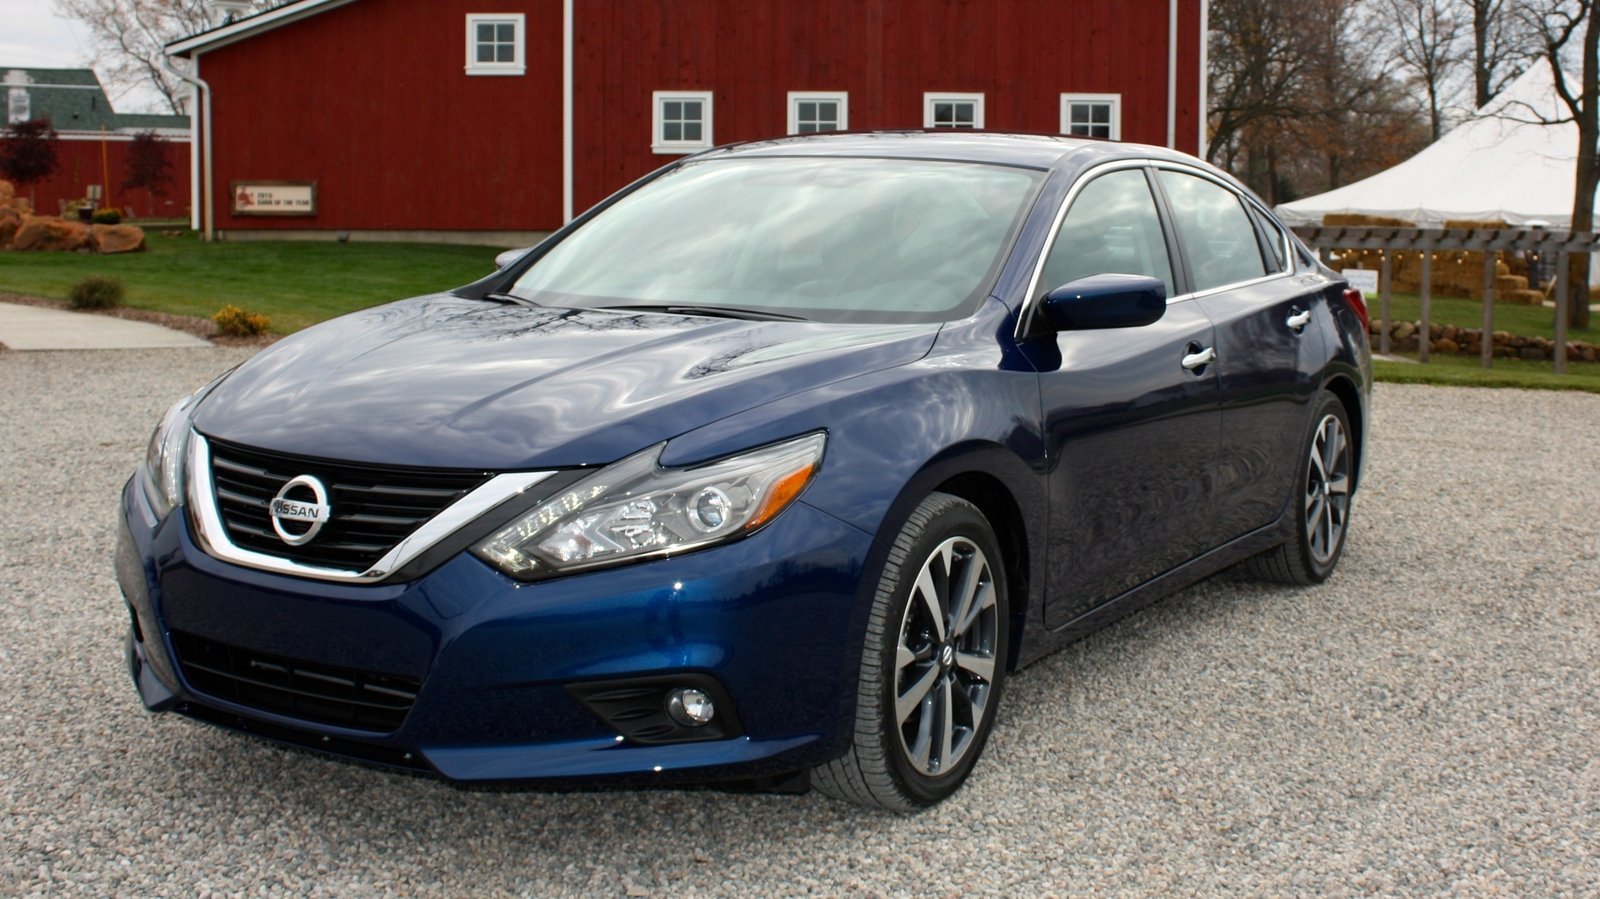 2016 nissan altima driving impression and review picture 655120 car review top speed. Black Bedroom Furniture Sets. Home Design Ideas